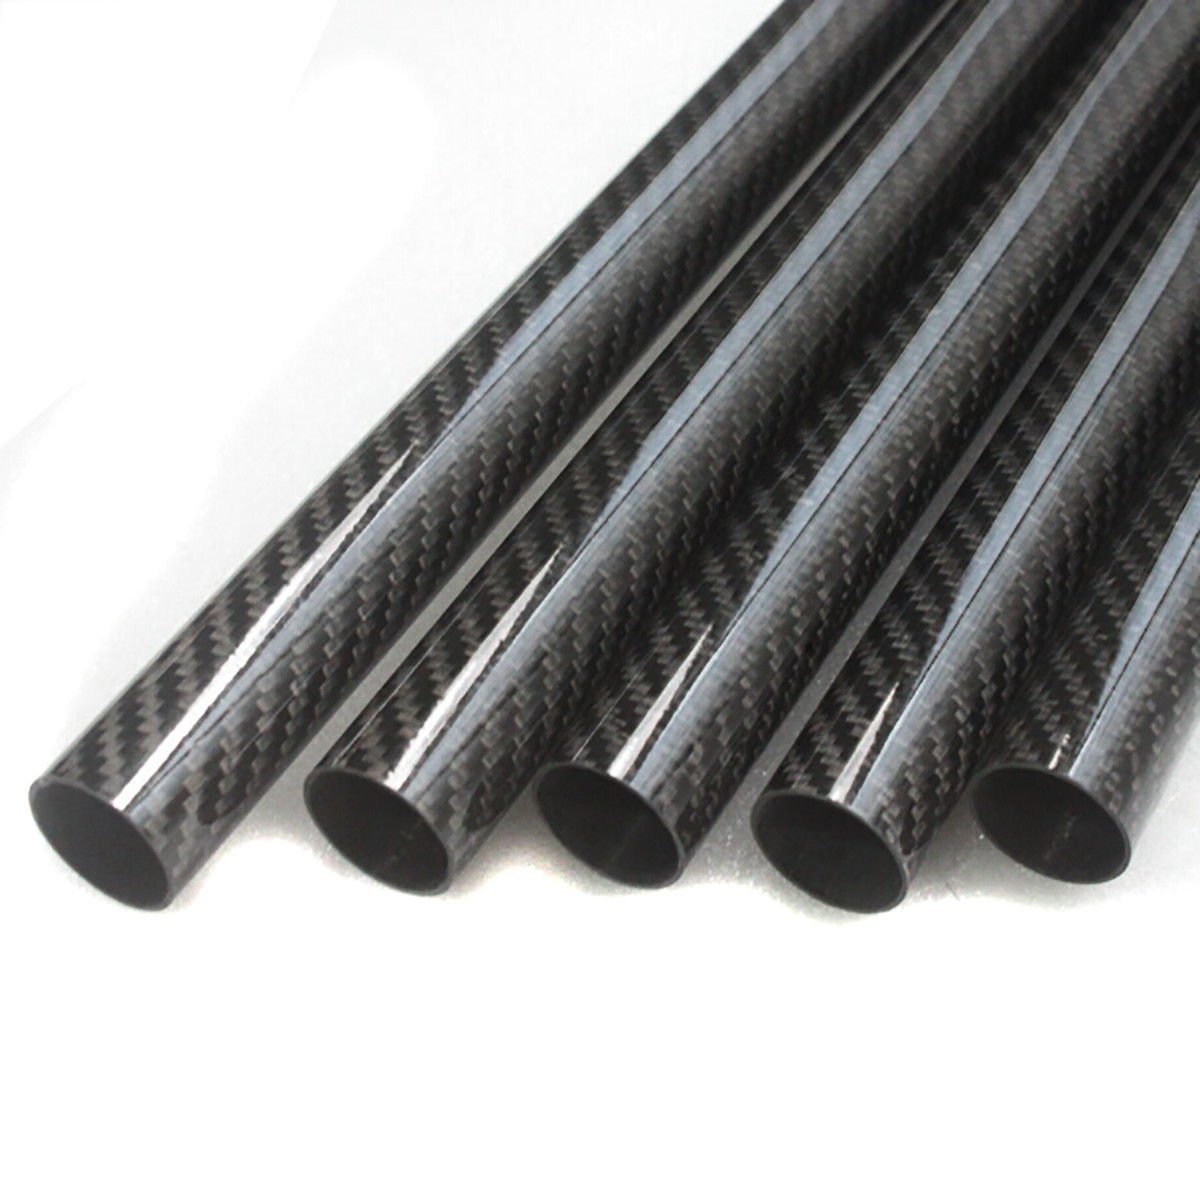 2PC Roll Wrapped Carbon Fiber Tube Glossy Surface 8mm 10mm 12m 8x10x330mm 10x12x330mm 810330mm